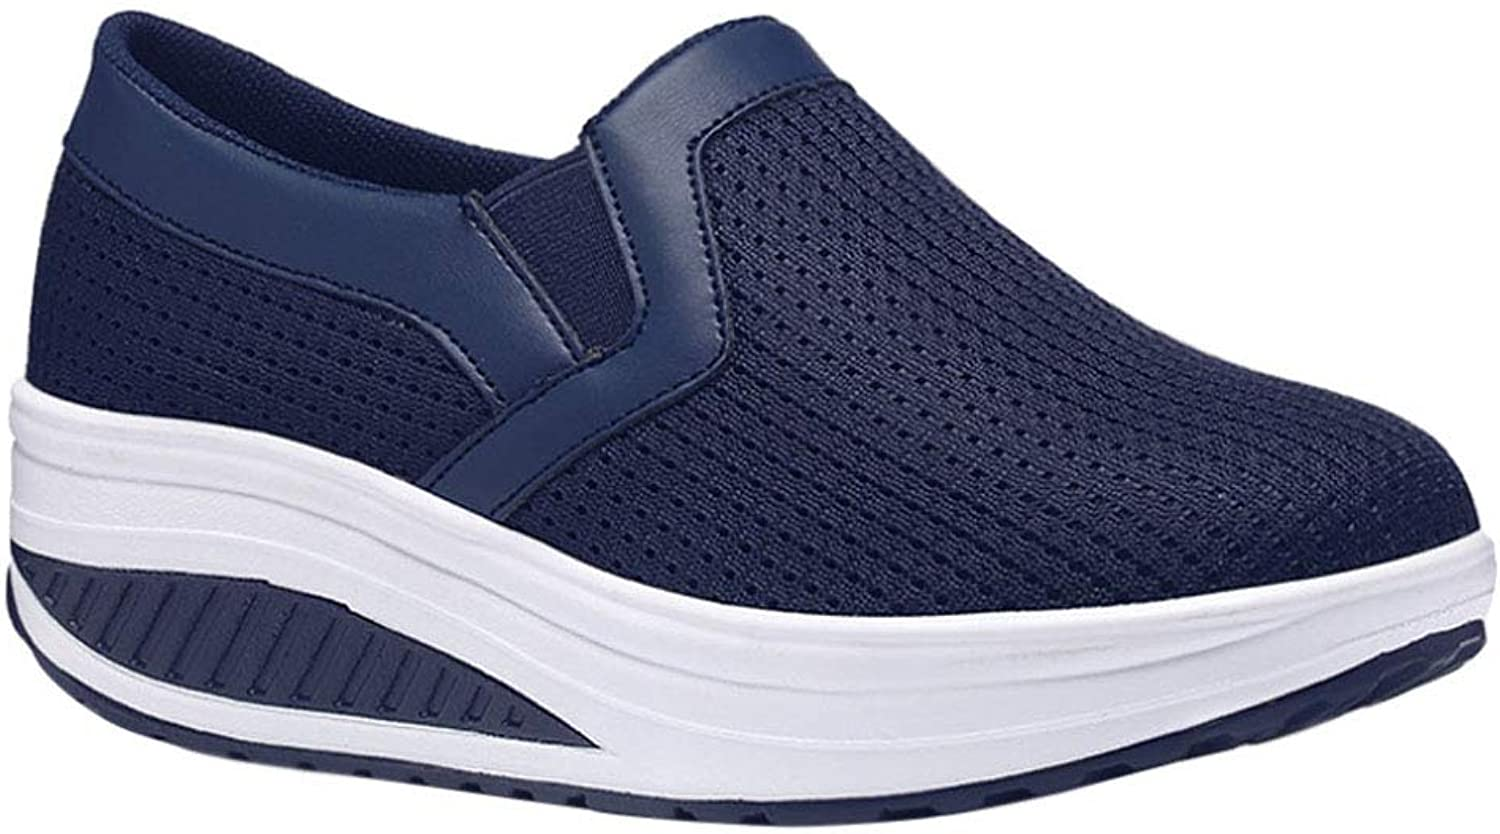 Uirend Women Athletic Walking shoes - Trainers Slip On Breathable Platform Loafers Casual Shake Wedge Hiking Sneakers Mesh Fashion